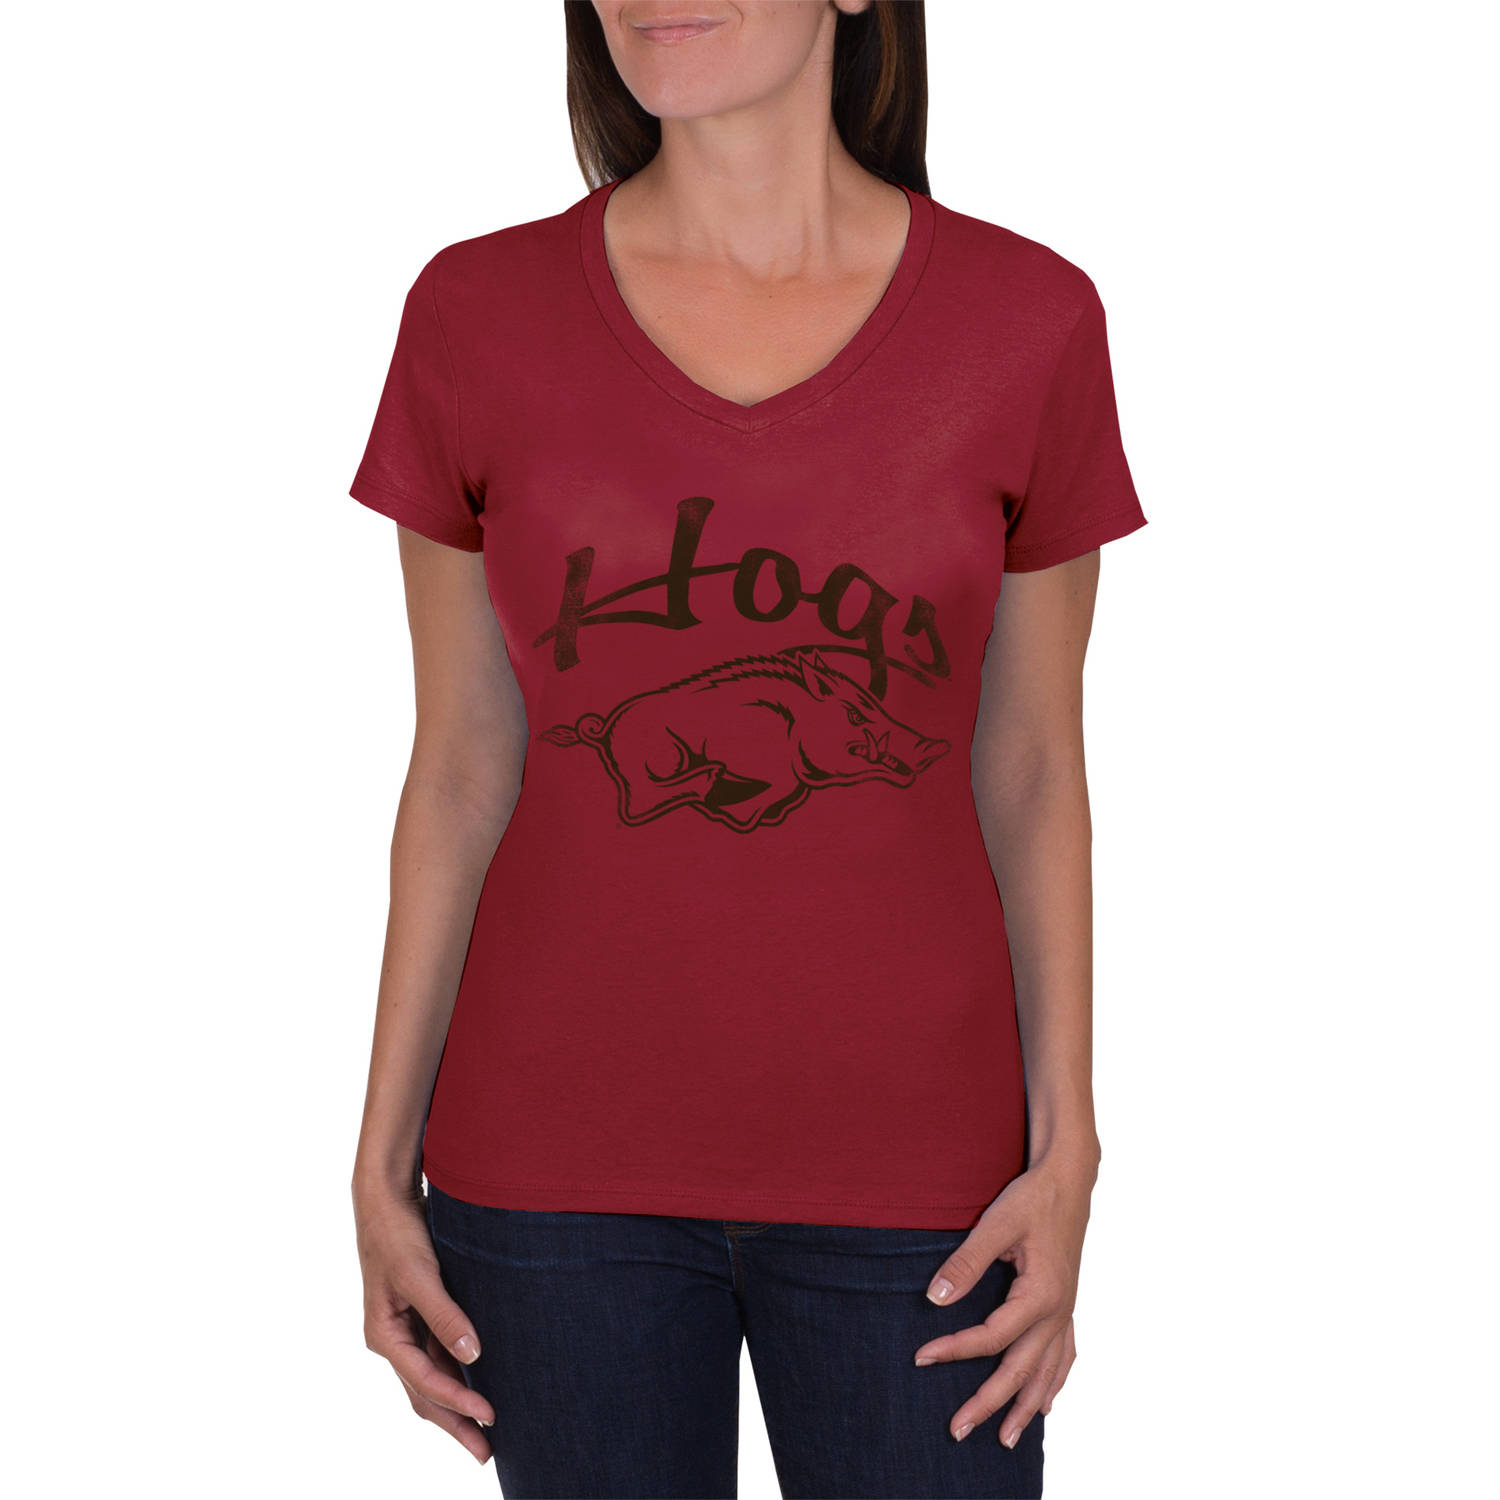 NCAA Arkansas Razorbacks Women's V-Neck Tunic Cotton Tee Shirt